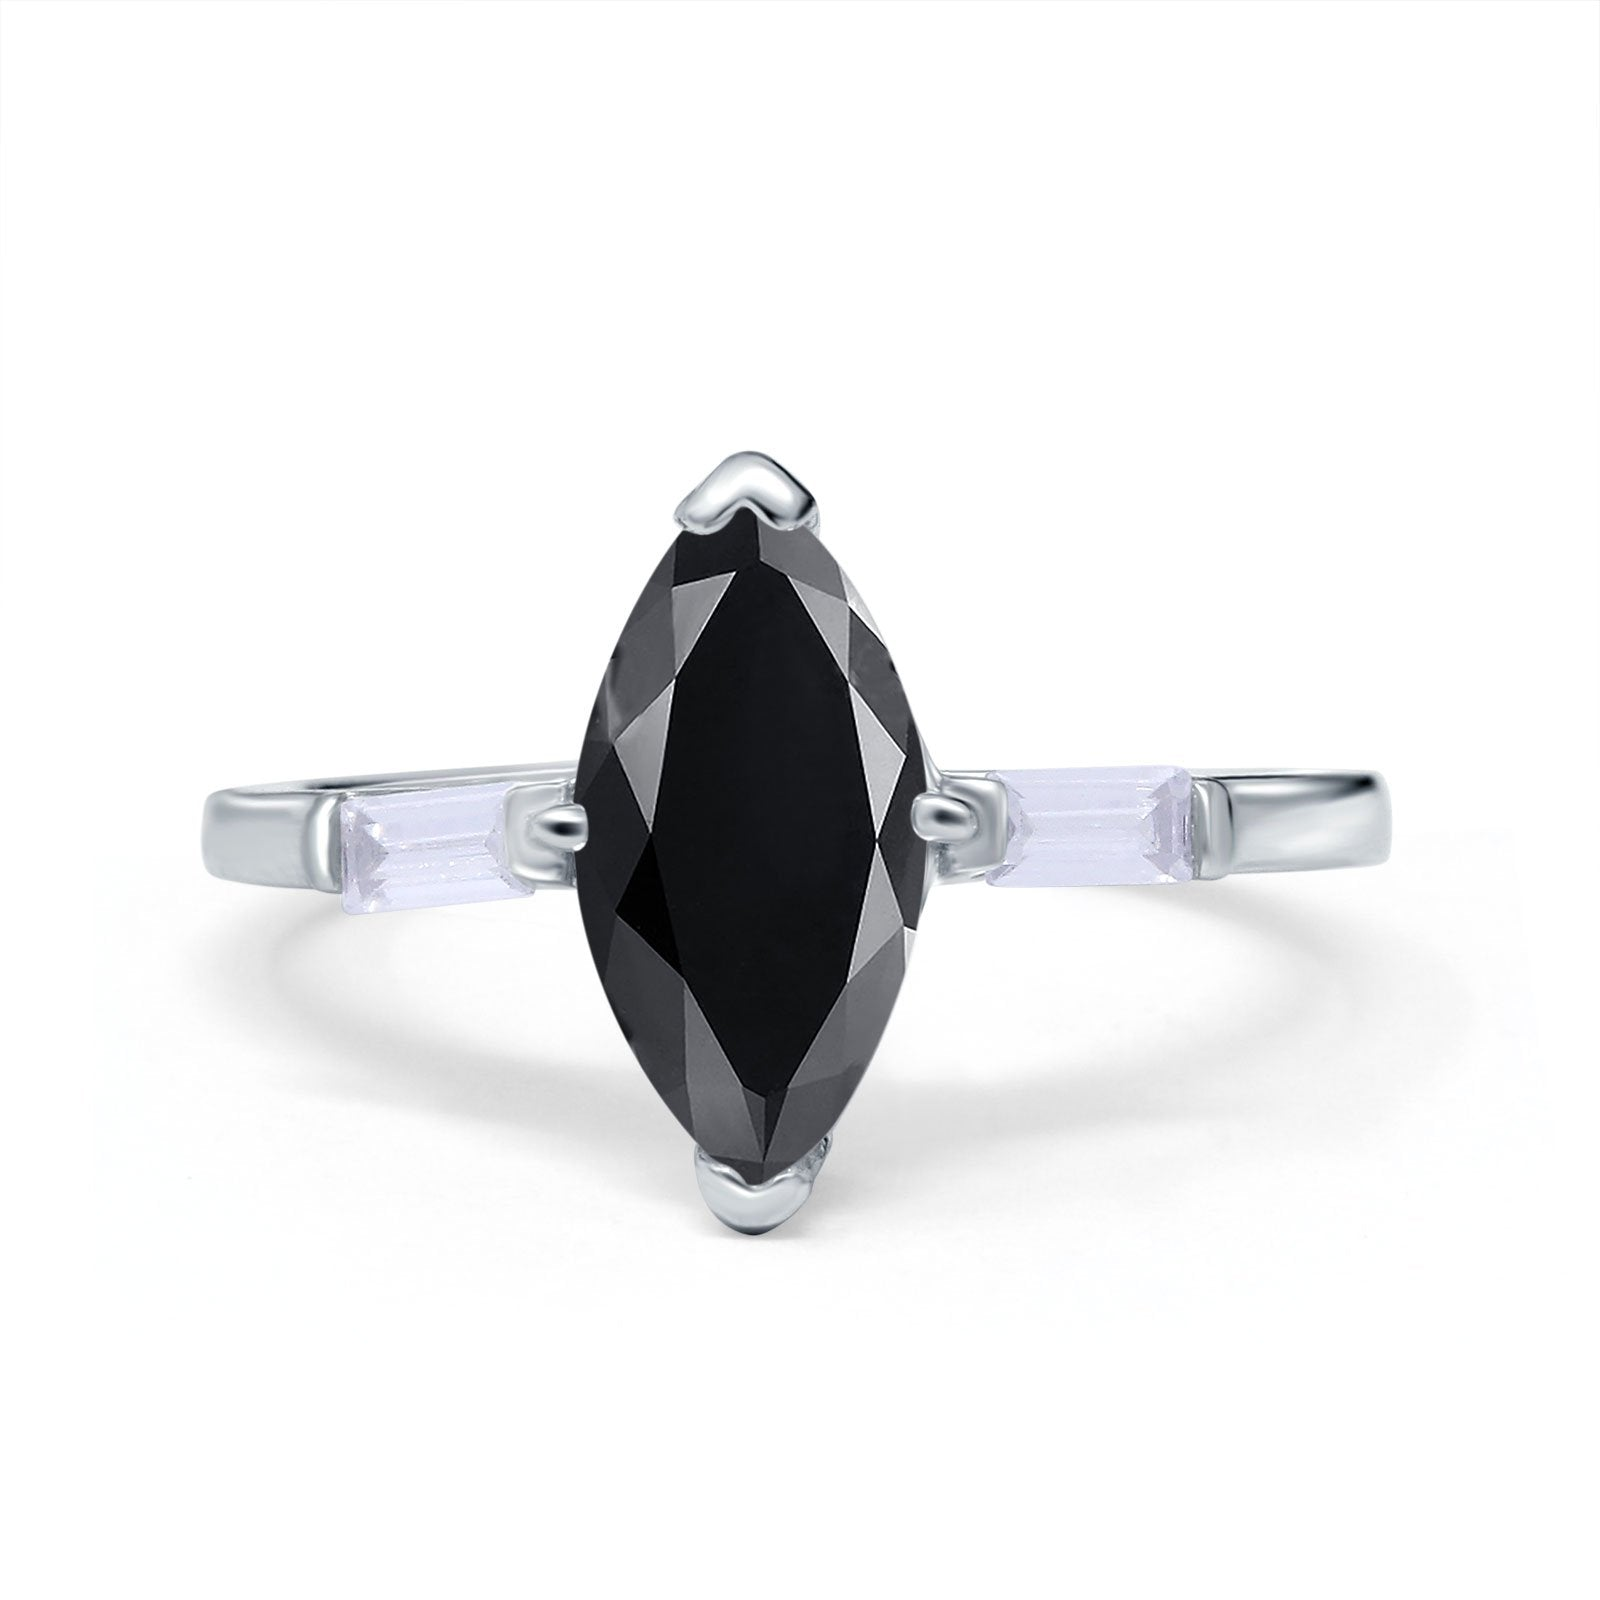 Marquise Art Deco Engagement Simulated Cubic Zirconia Ring 925 Sterling Silver